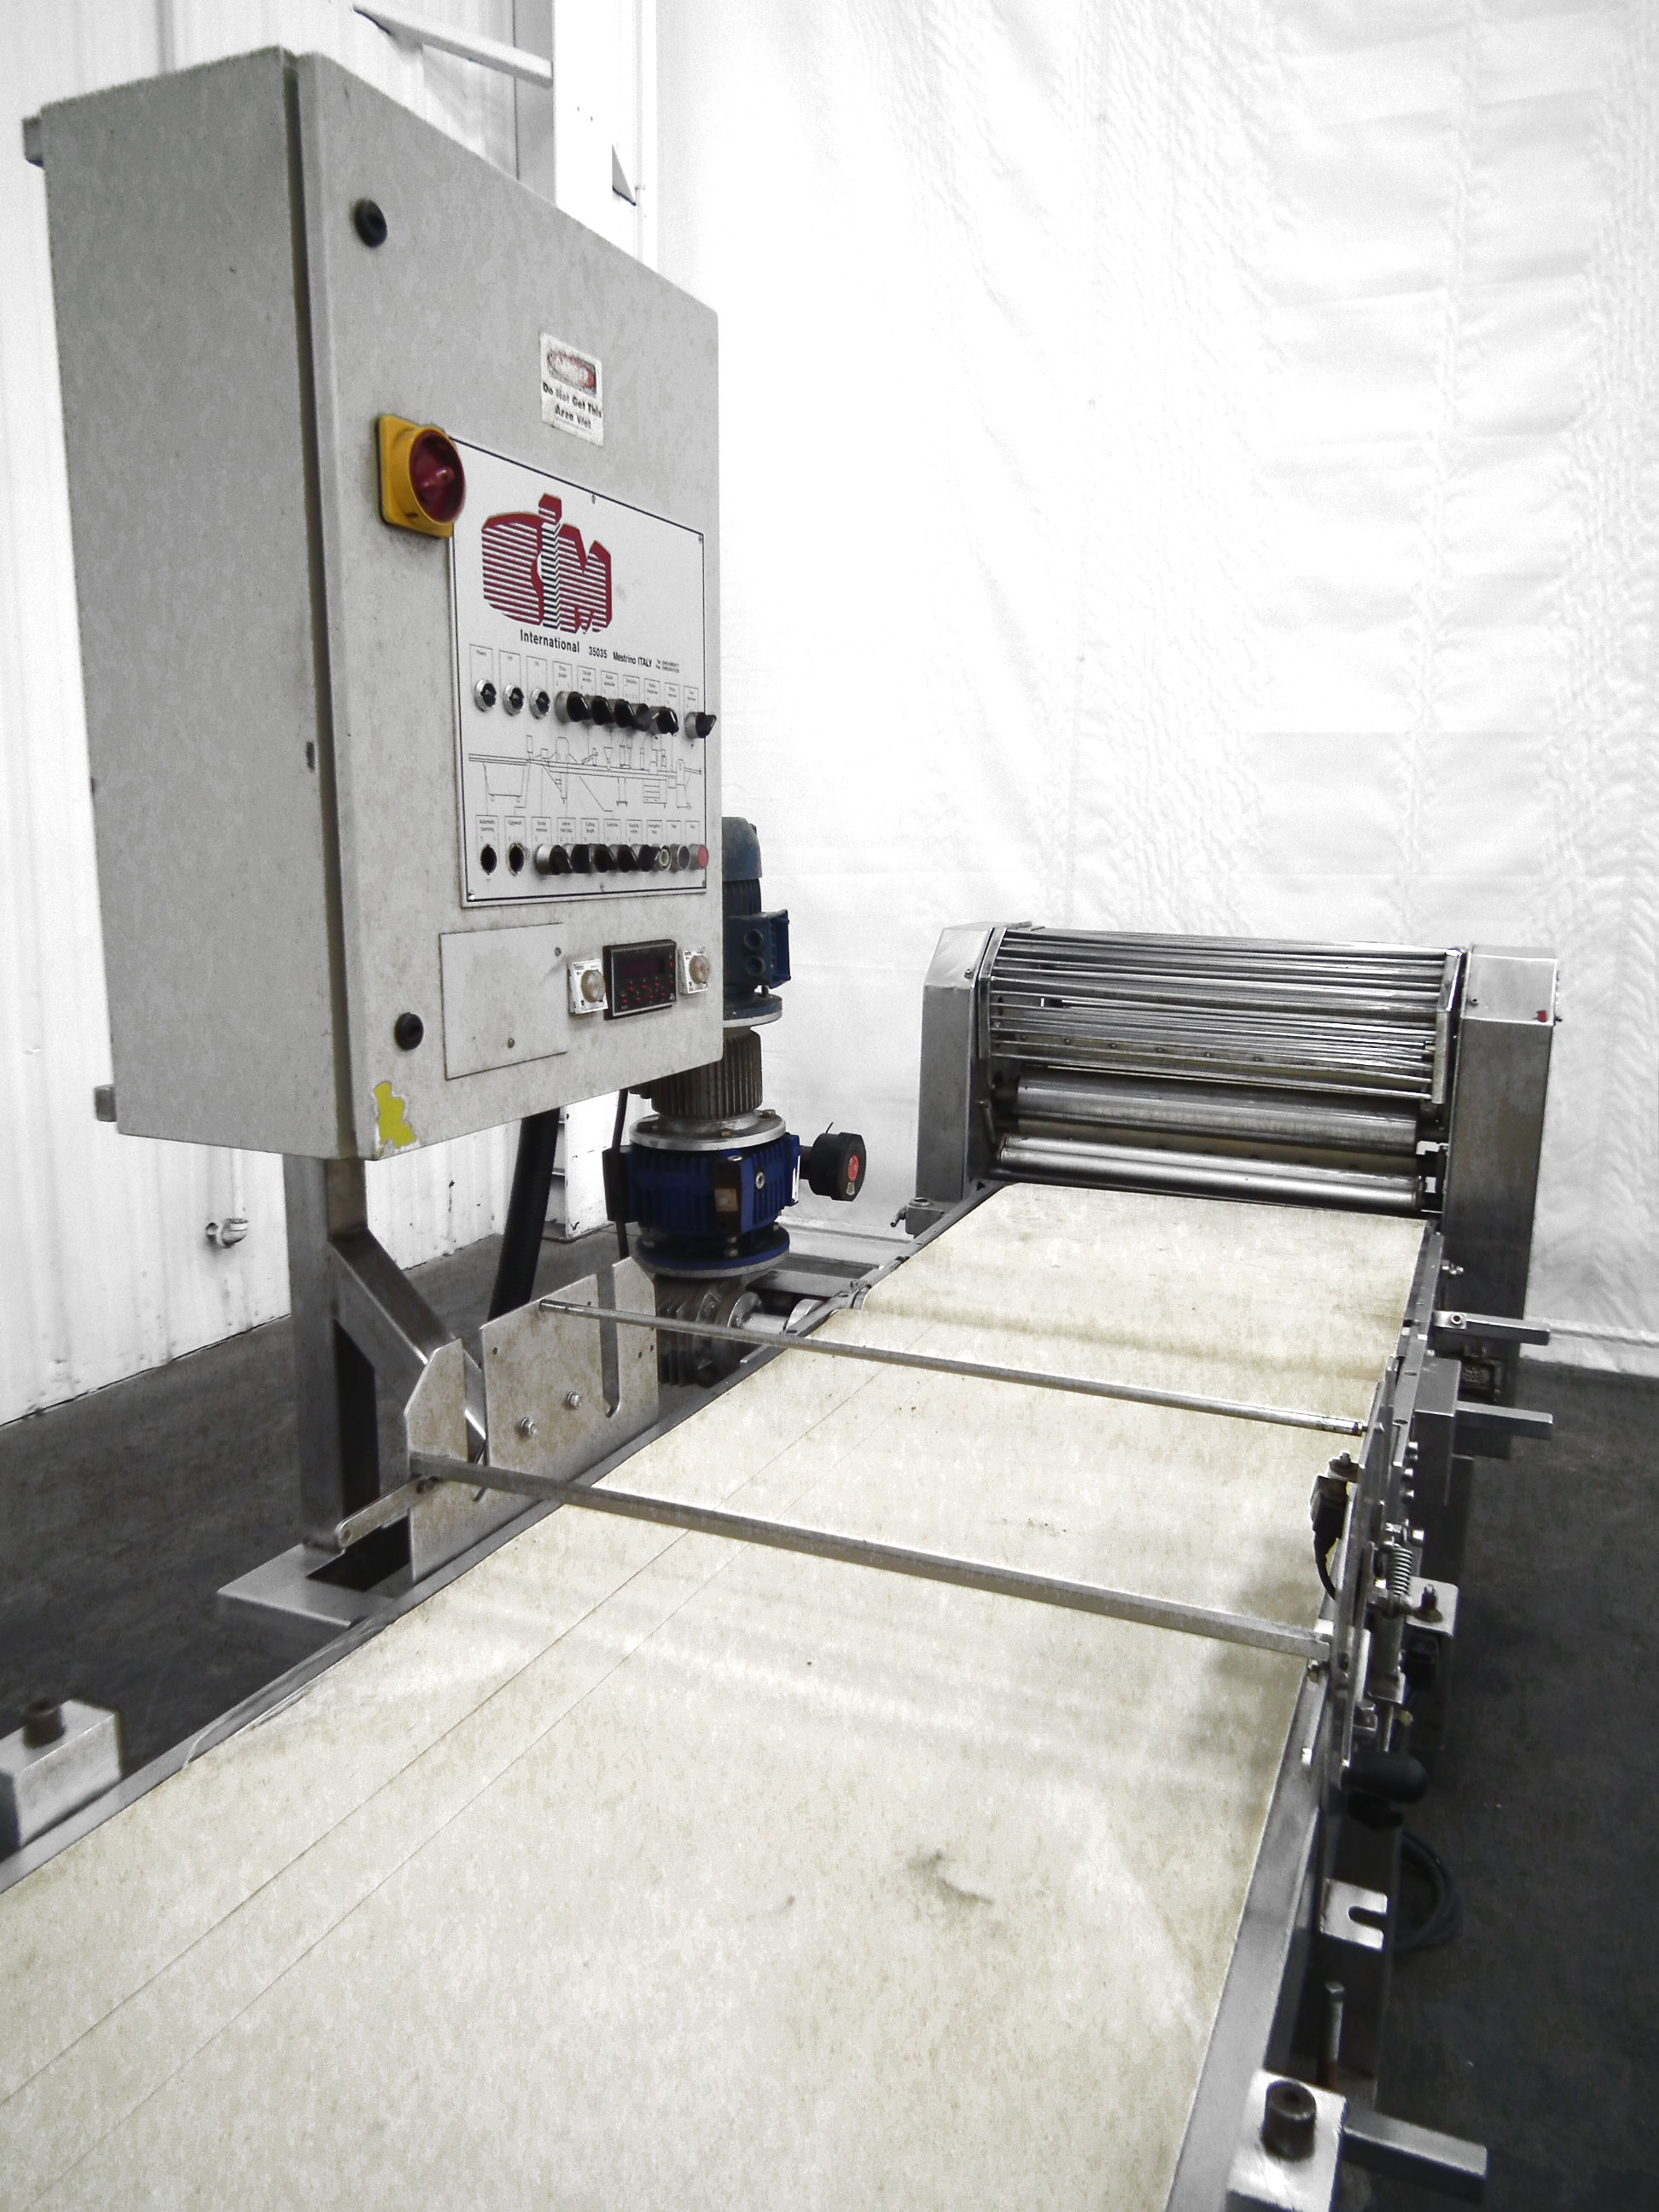 CIM Maxima 165 Dough Sheeter Guillotine 28 In Wide A7948 - Image 5 of 11